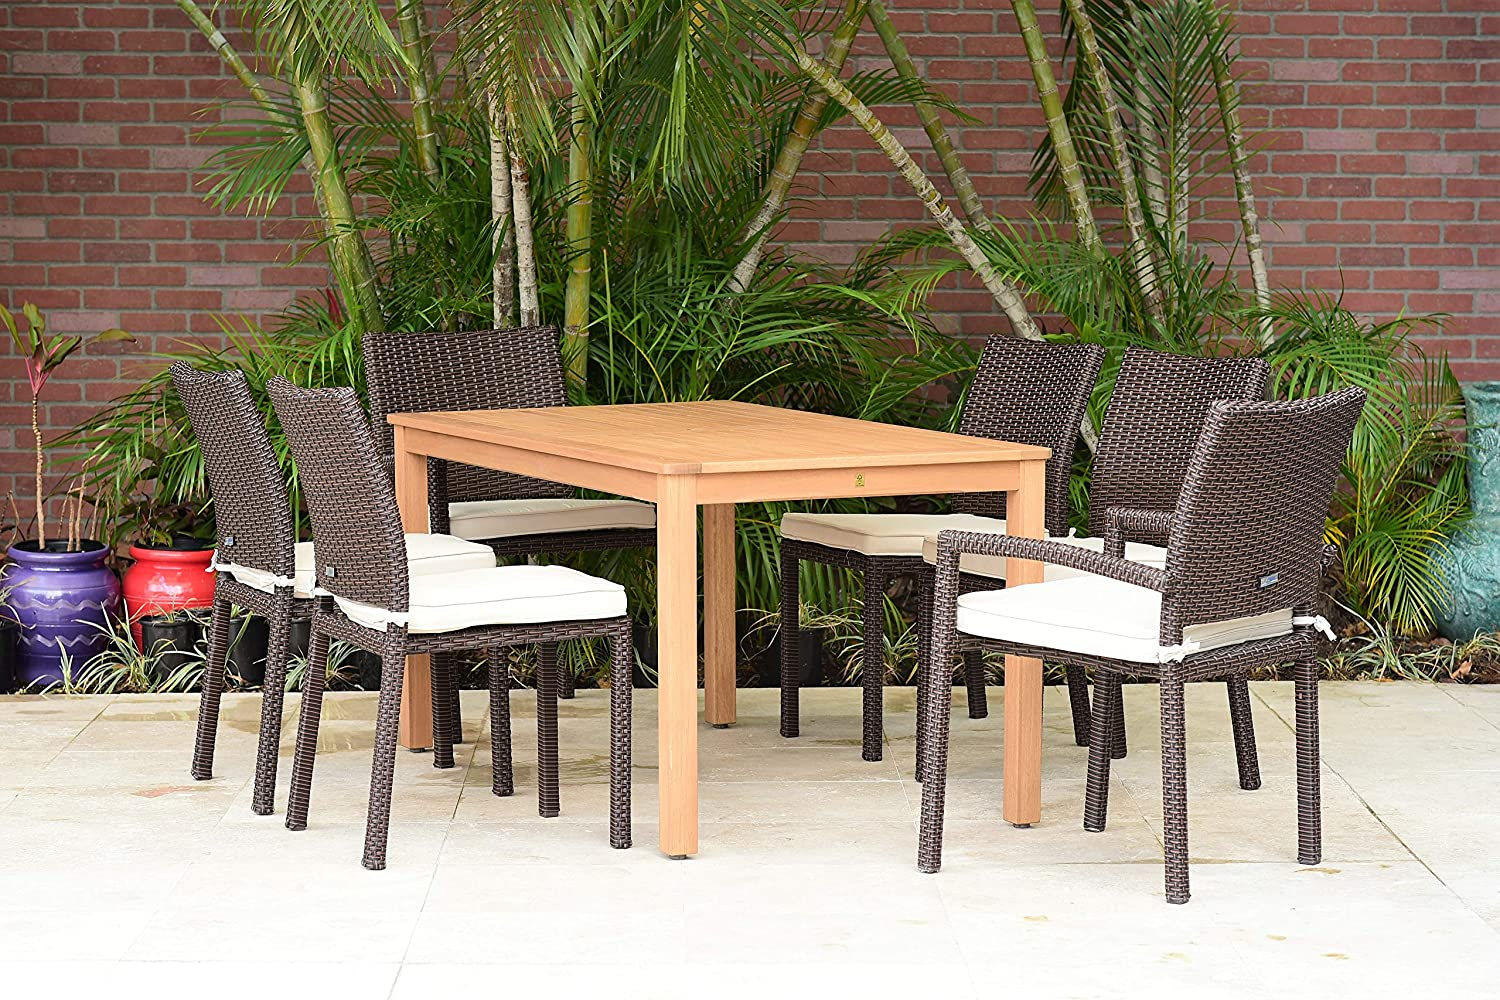 Amazonia Wilshire 7 Piece Rectangular Eucalyptus Patio Dining Set | Teak Finish and Brown Wicker Chairs with Cushions